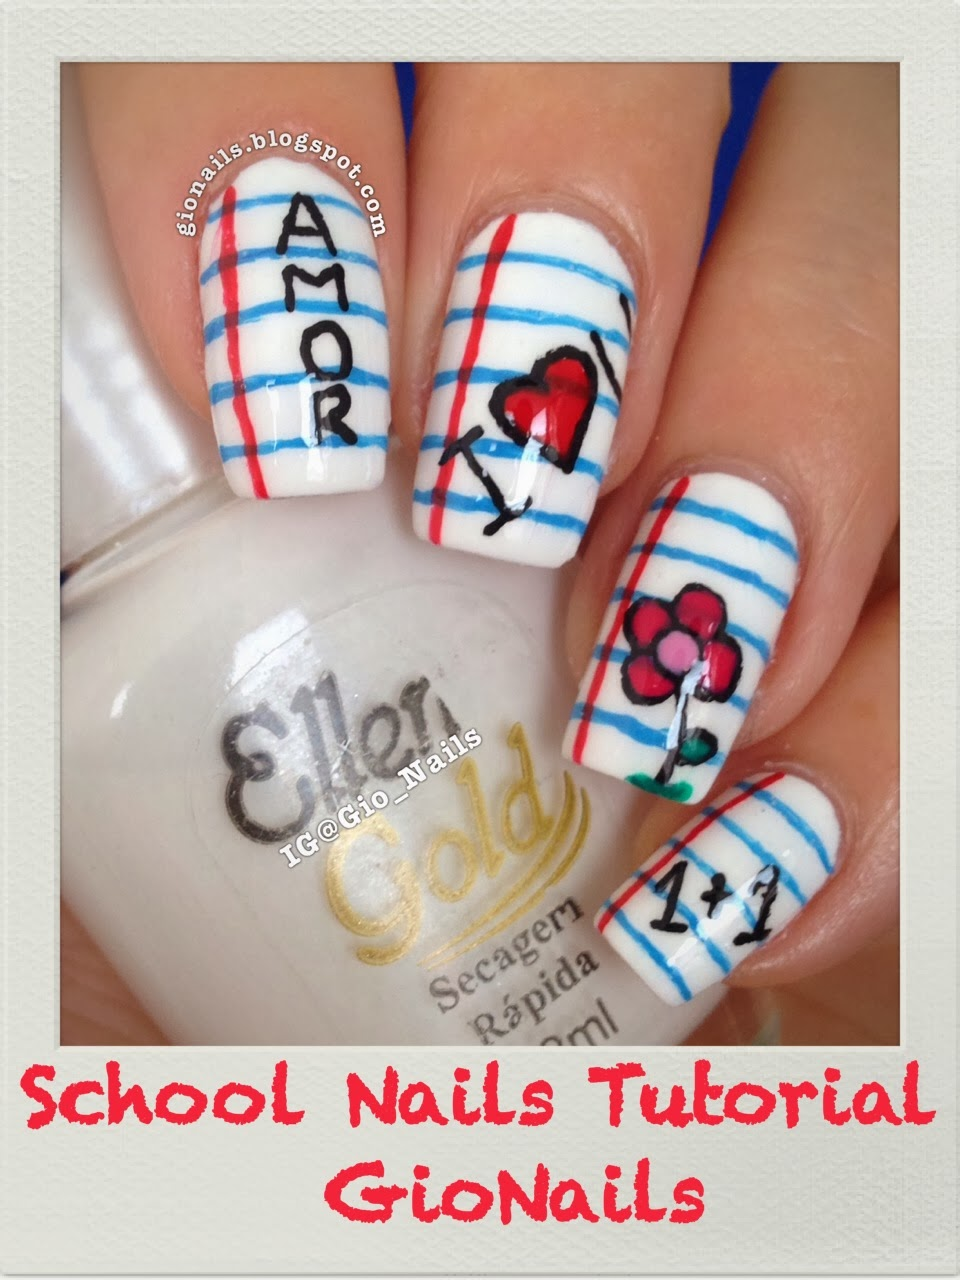 http://gionails.blogspot.be/2014/02/tutorial-school-nails.html